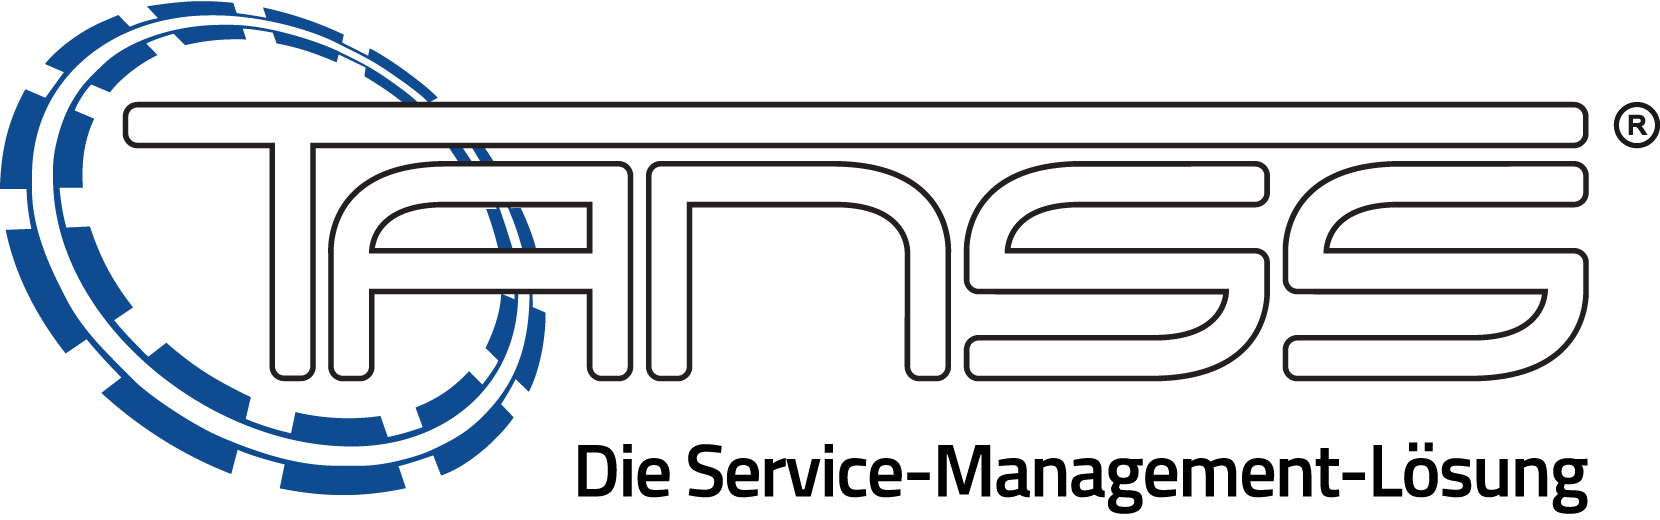 Managed Service-System TANSS